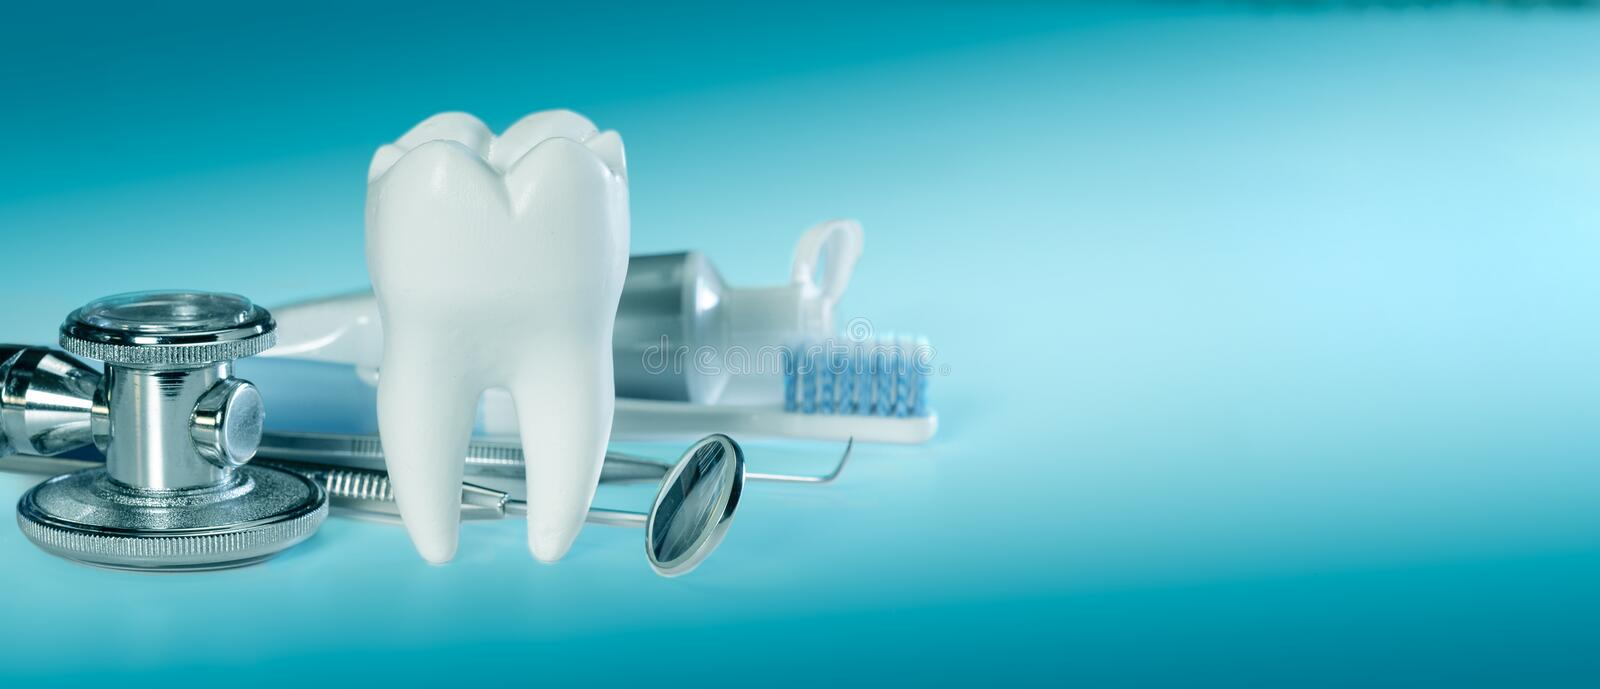 1 438 Dental Banner Photos Free Royalty Free Stock Photos From Dreamstime